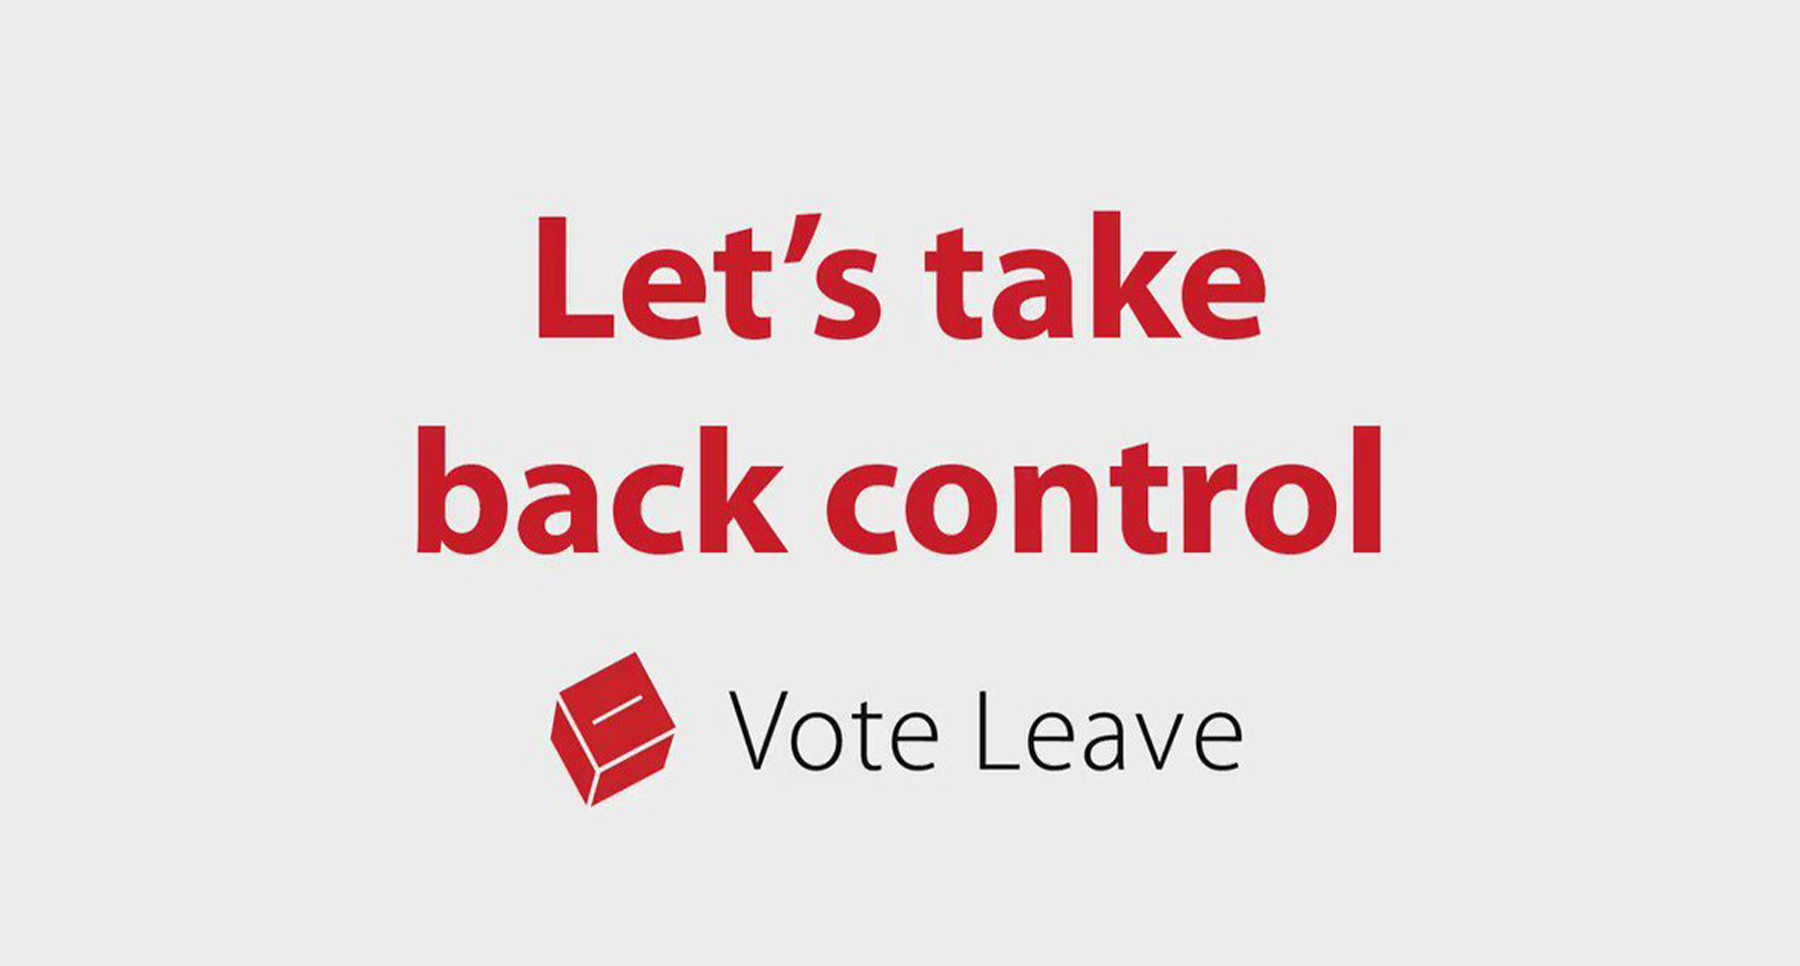 Brand storytelling by Brexit's 'Leave' marketing campaign